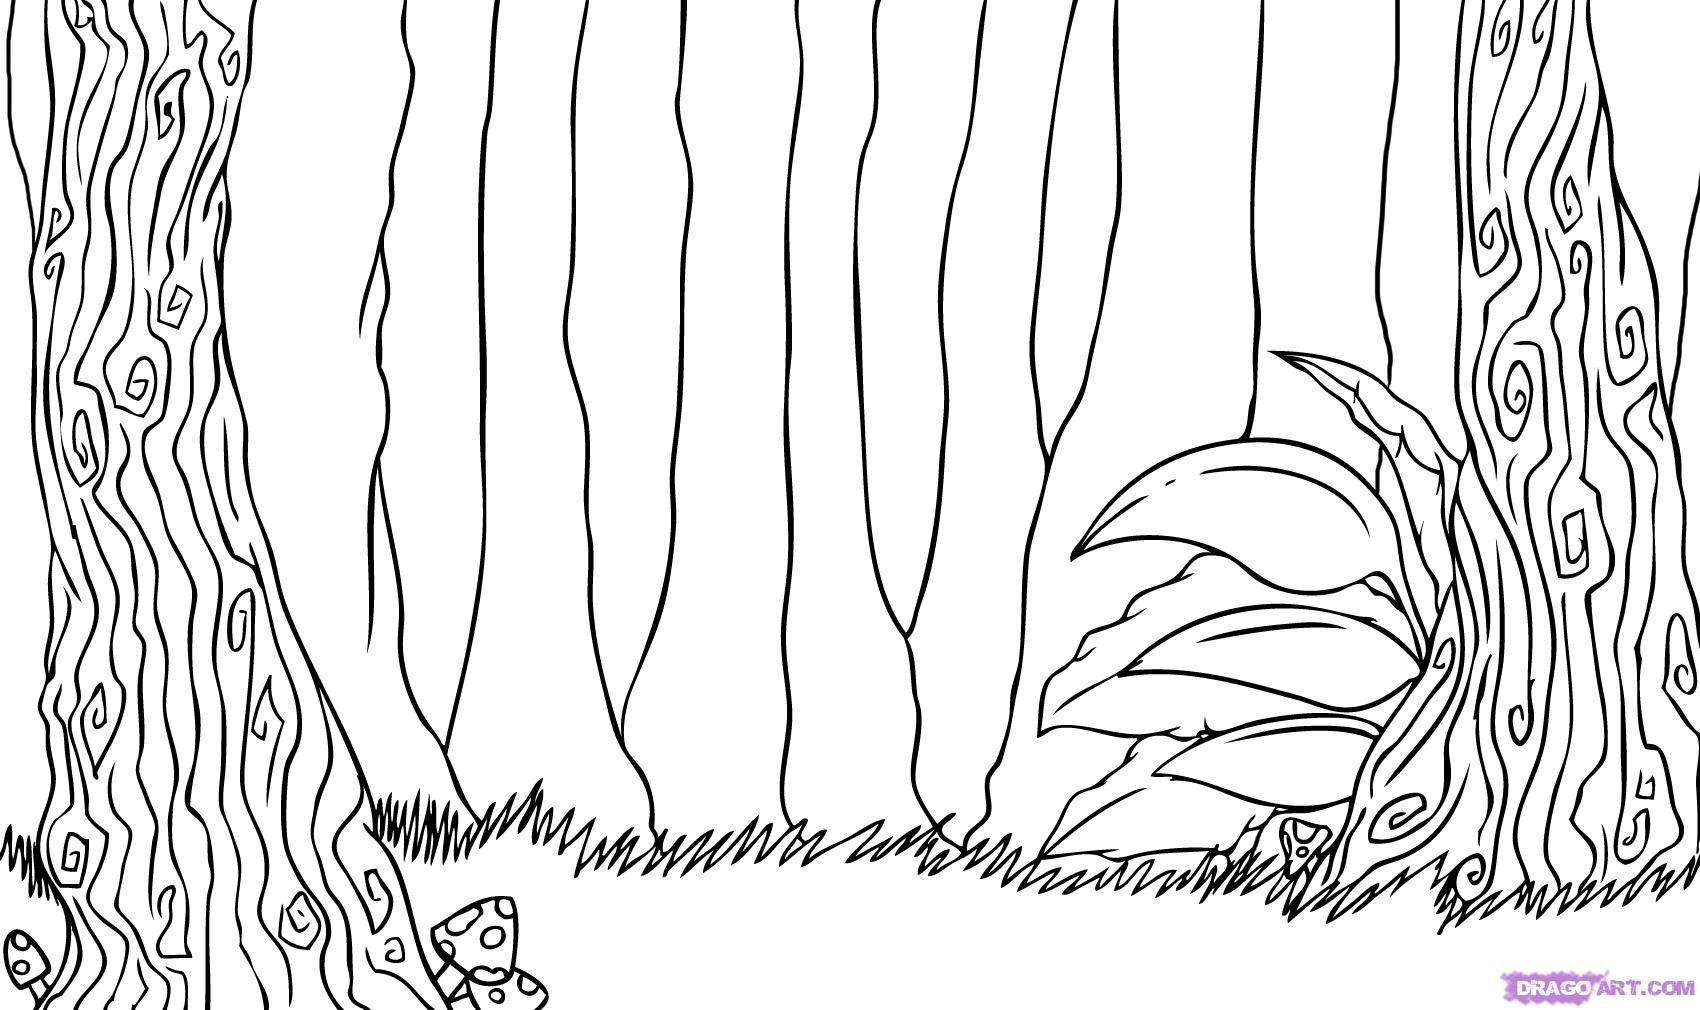 Coloring Pages Background Coloring Pages advanced forests coloring pages easy scenery drawings for kids pinterest how to draw and coloring